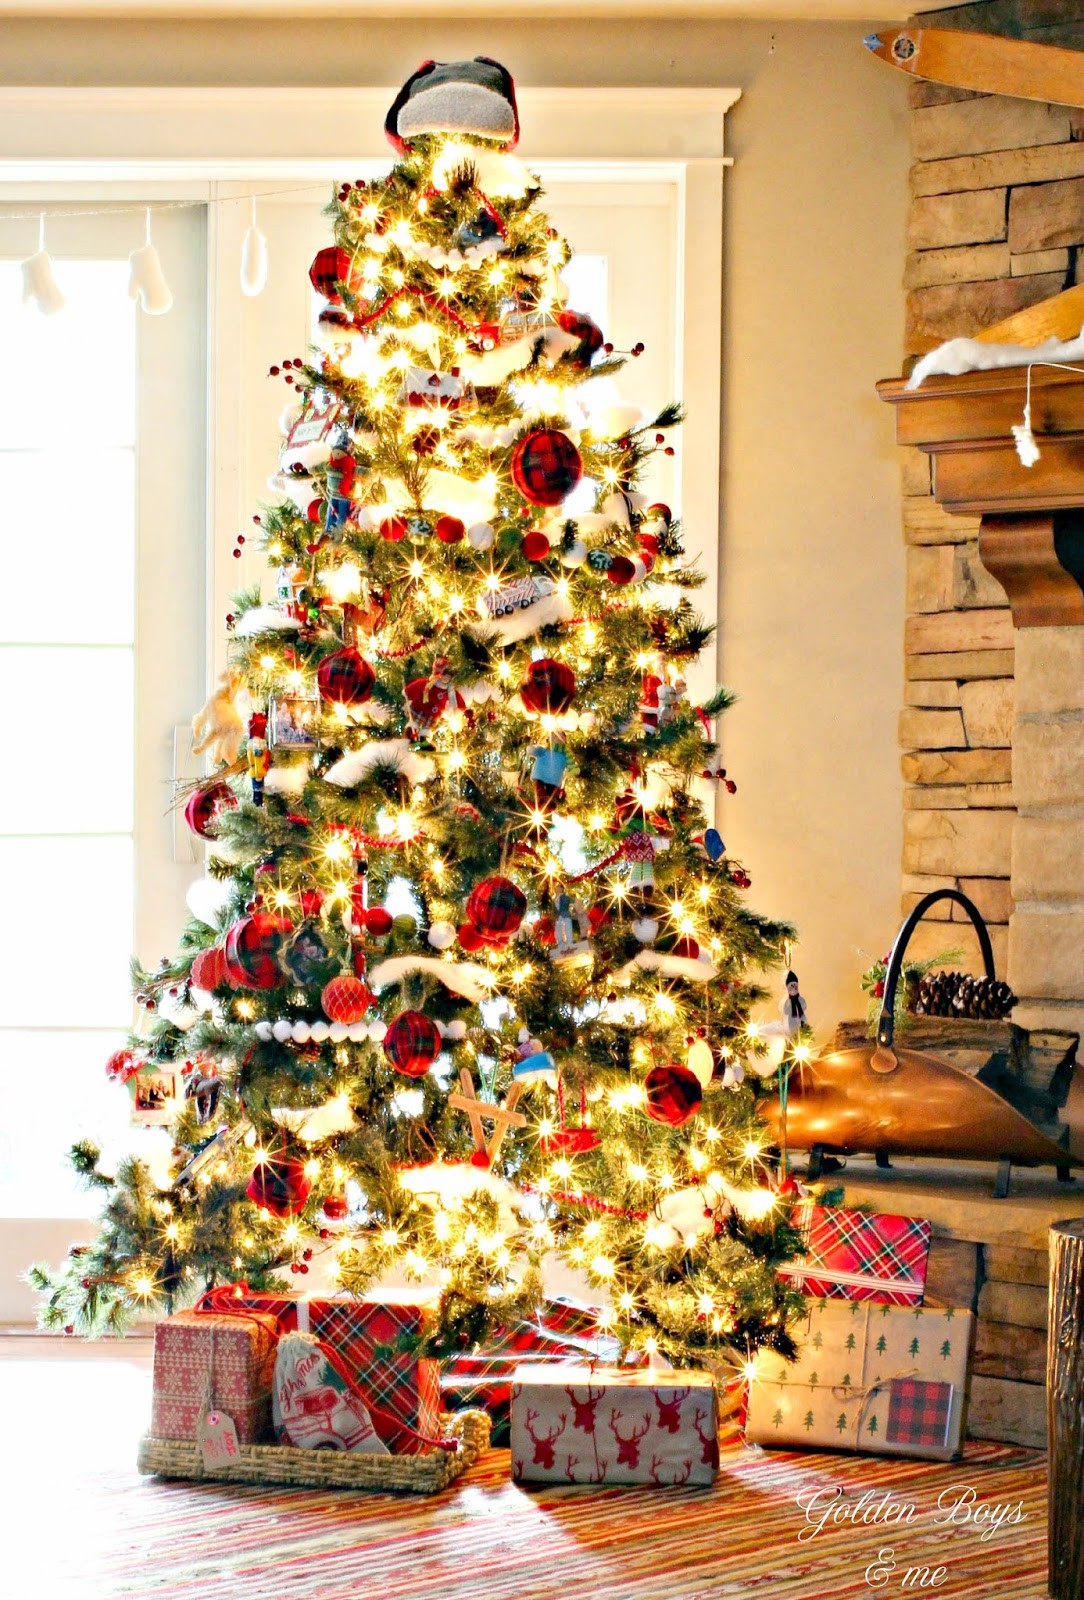 Cabin Christmas Tree  Golden Boys and Me Easy Plaid Ornaments & Our Family Room